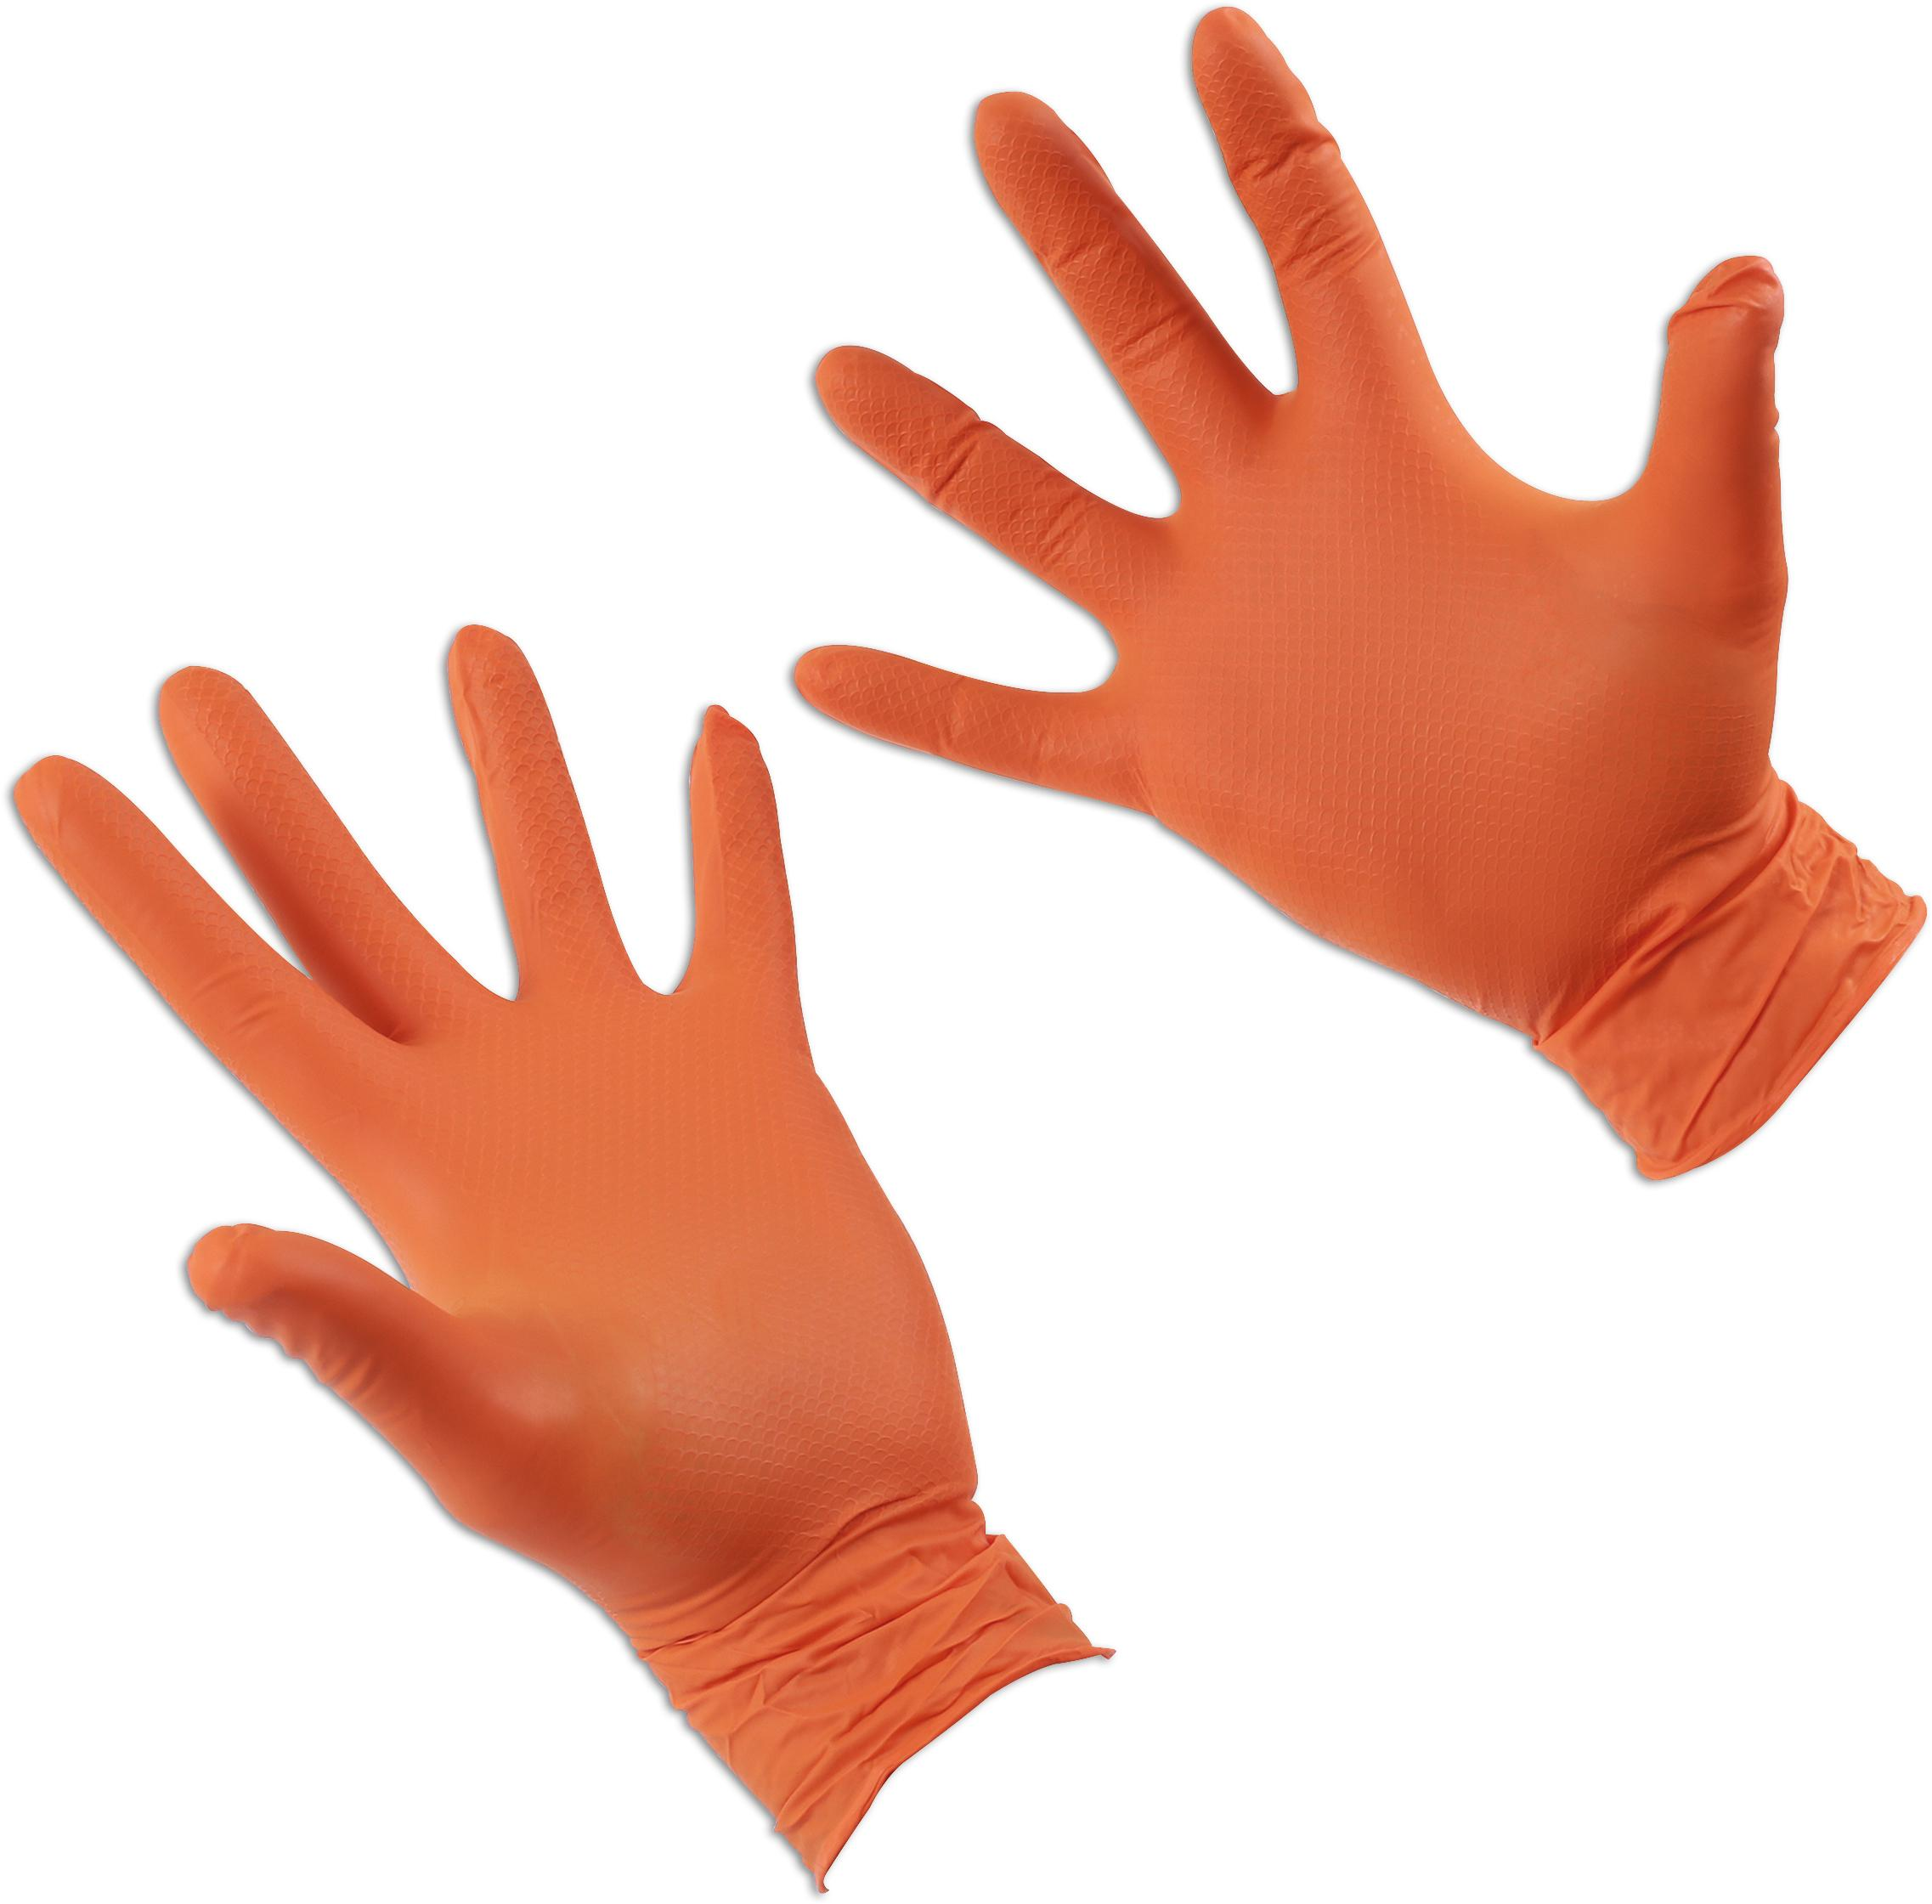 Grippaz Extra Large Nitrile Gloves Retail Bag of 10 Pieces